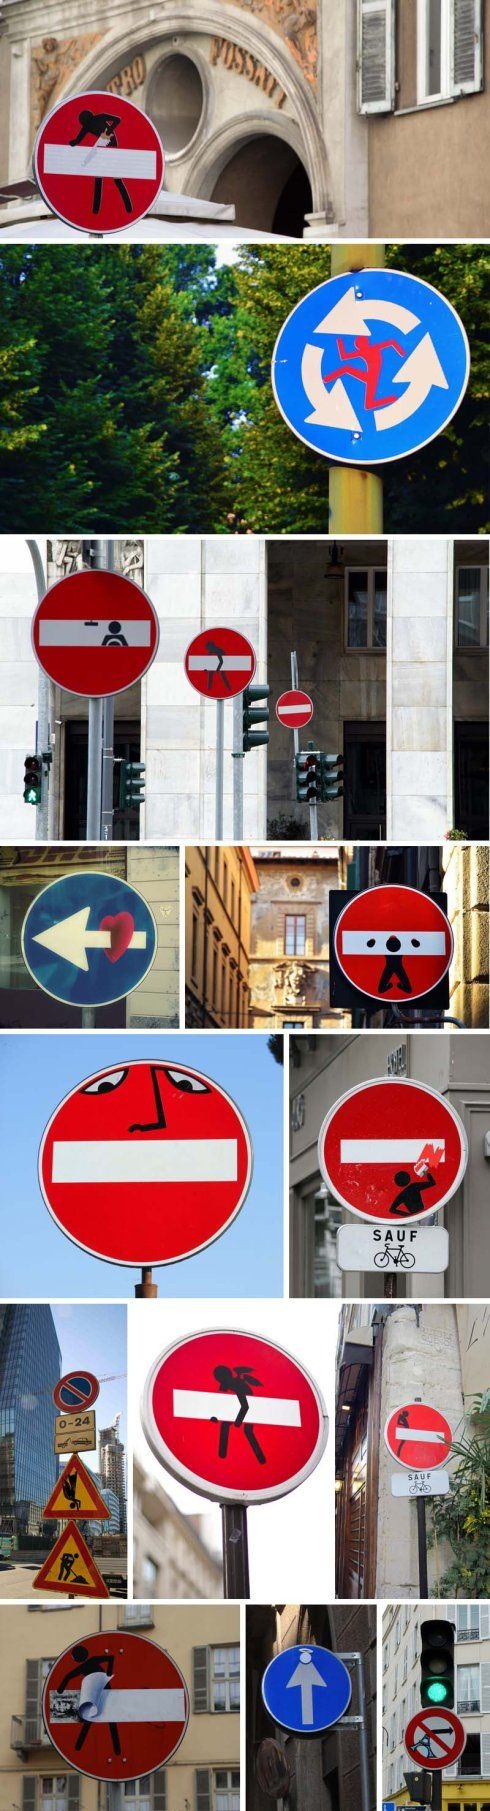 French street artist Clet Abraham, now living and working in Florence, humorously alters traffic signs throughout major cities in Europe by strategically pasting removable stickers on them.